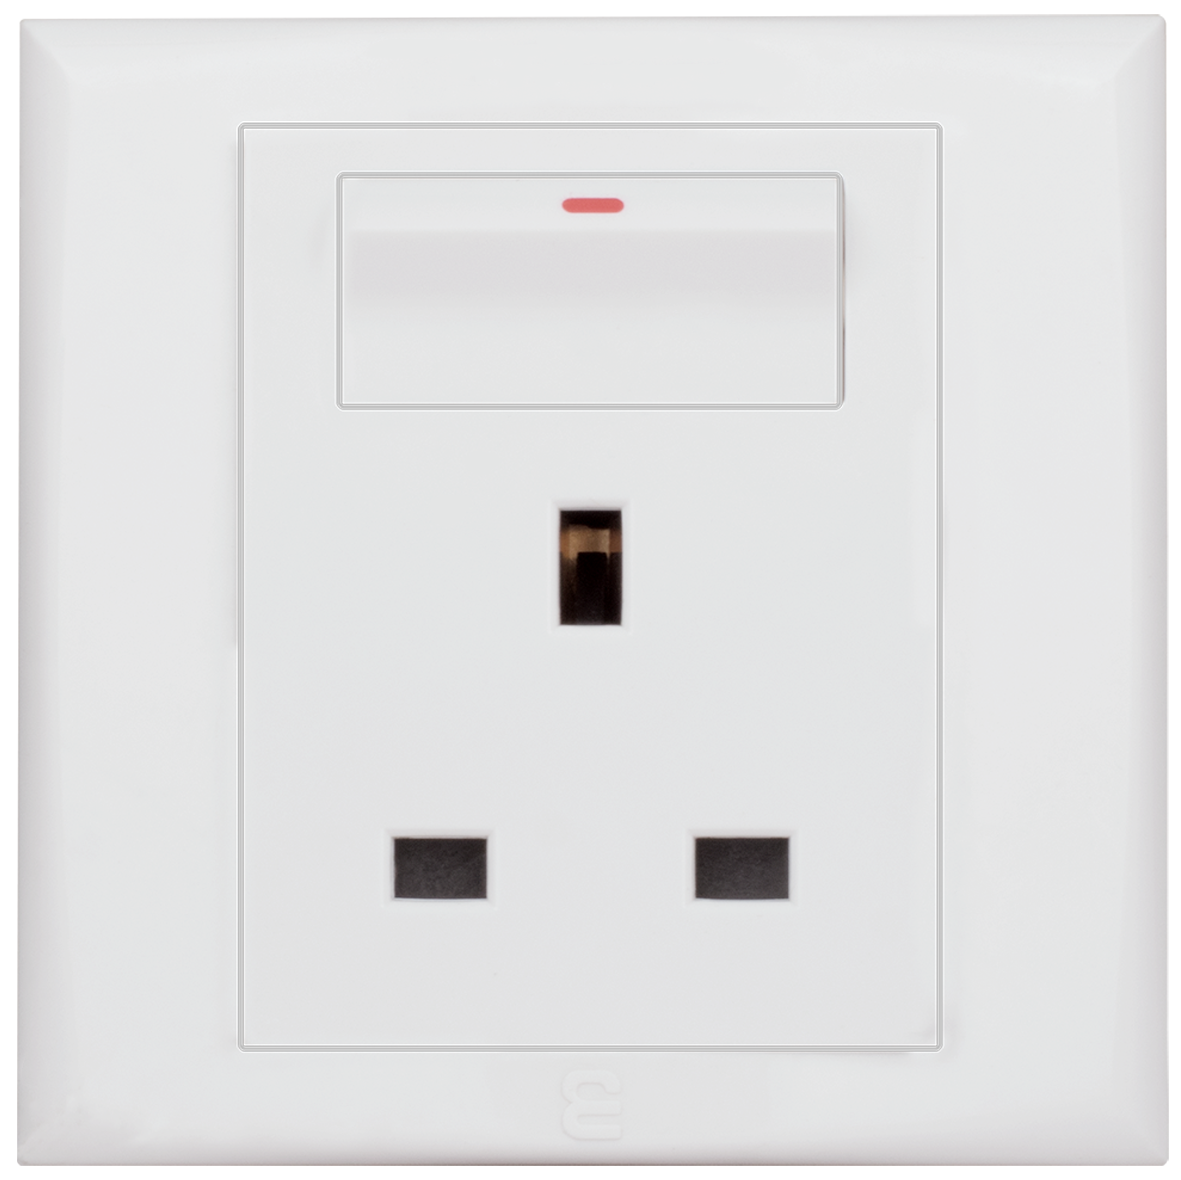 Socket british type with switch